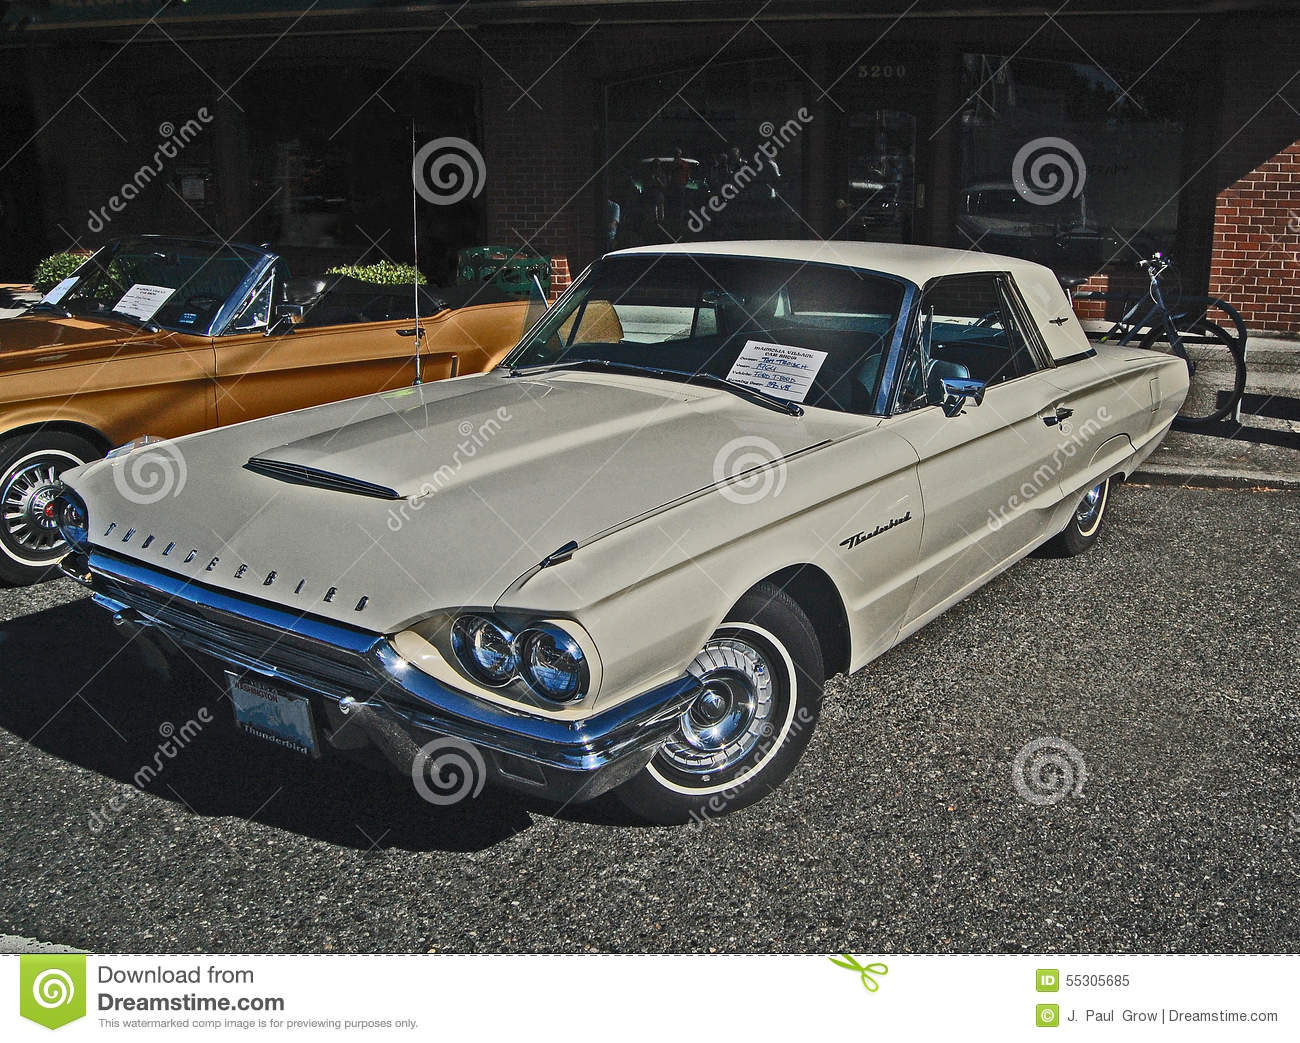 1964 ford thunderbird classic car editorial image image 55305685. Black Bedroom Furniture Sets. Home Design Ideas